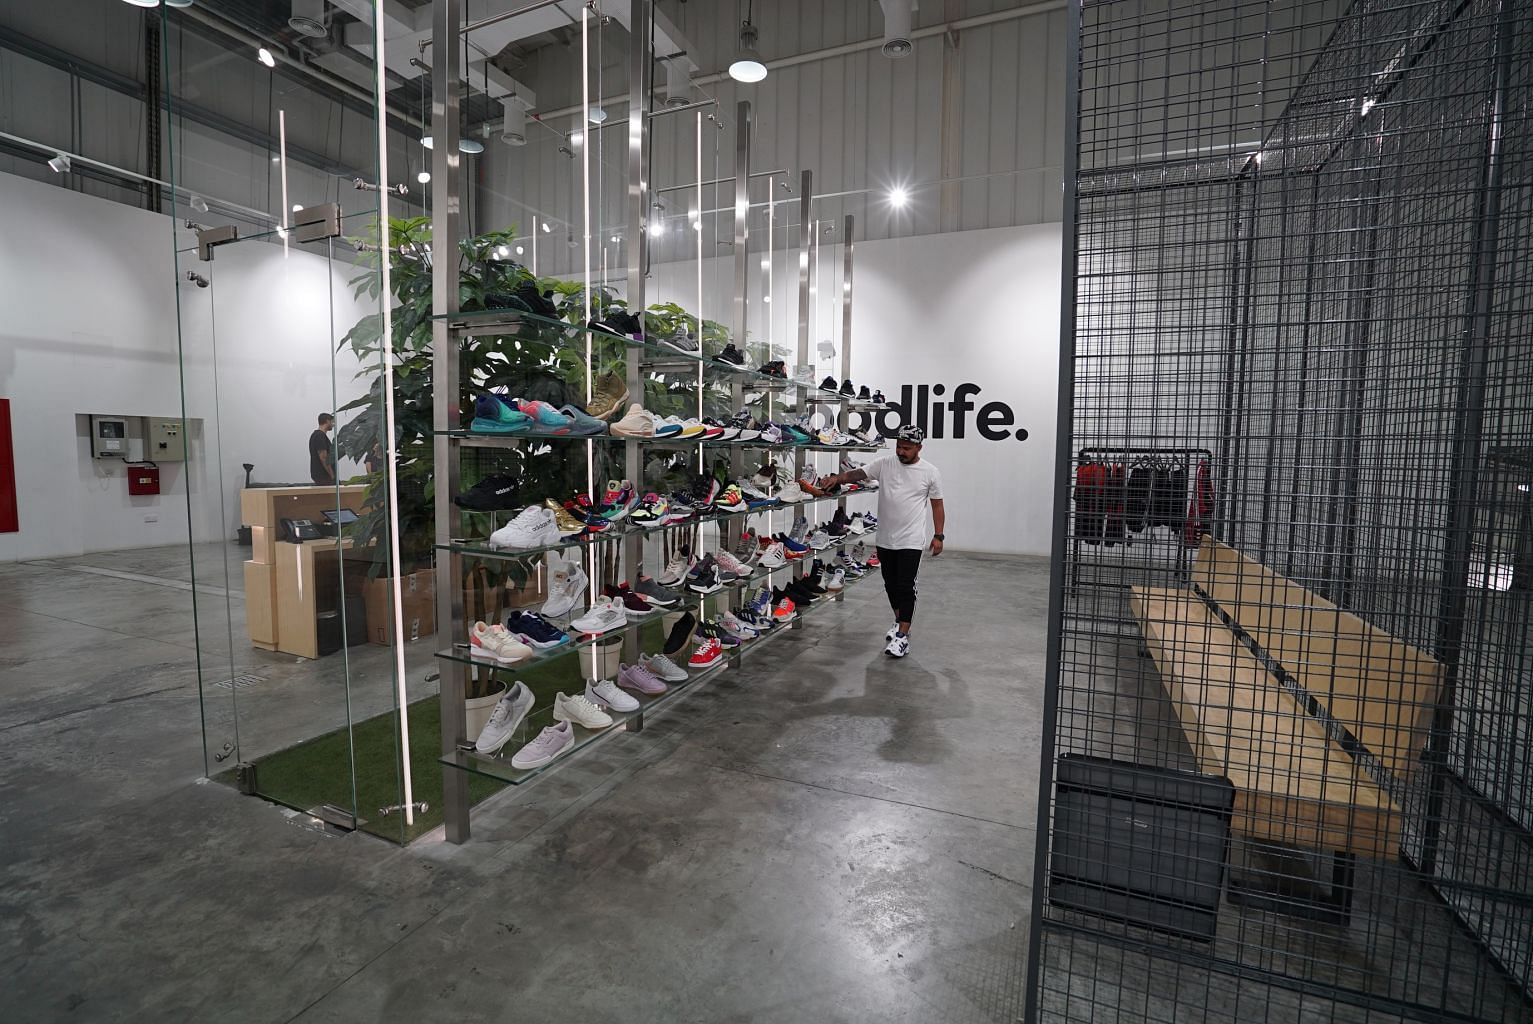 Sneaker boutique thegoodlife sells hard-to-find sneakers. It is located in Alserkal Avenue, an arts district in an industrial zone of Dubai.